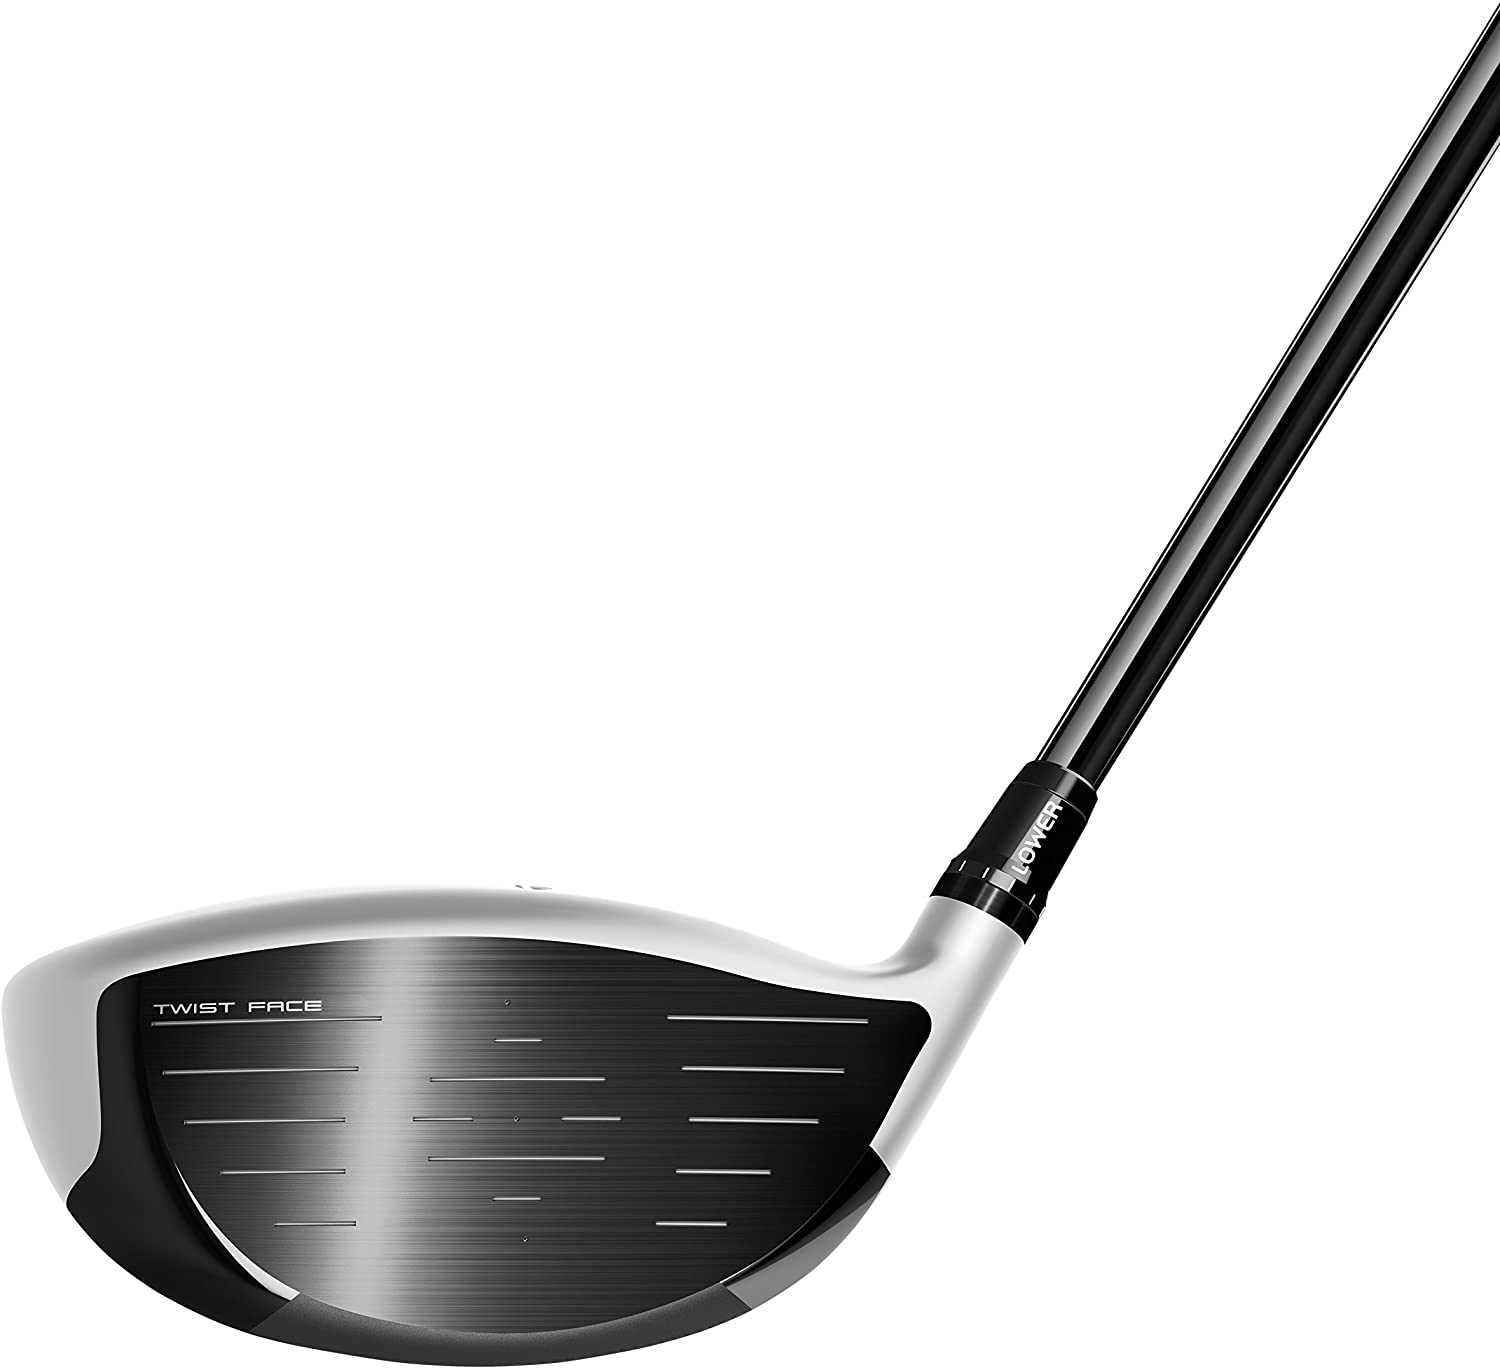 Taylormade m4 club face